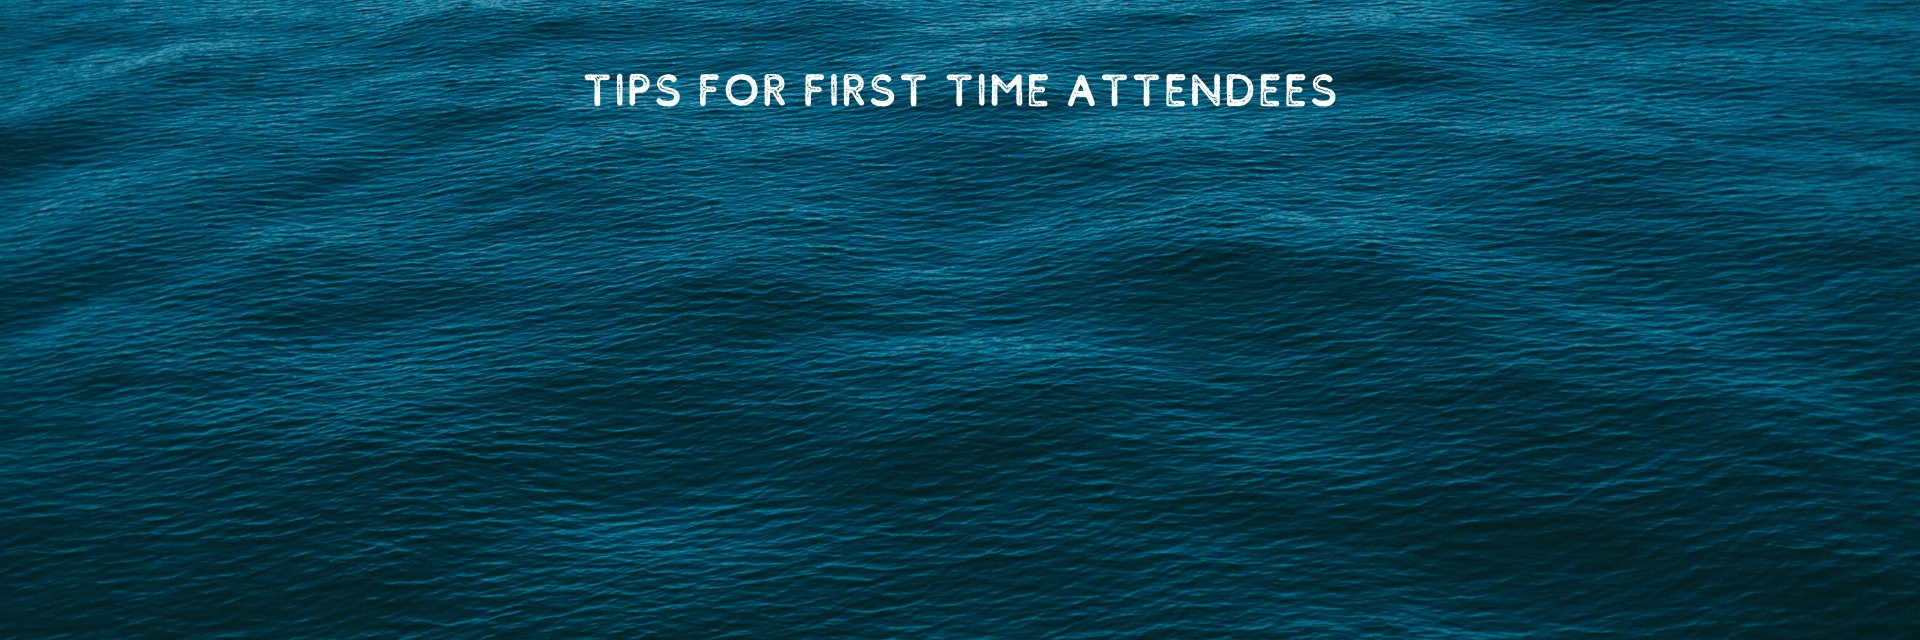 TIPS FOR FIRST TIME ATTENDEE